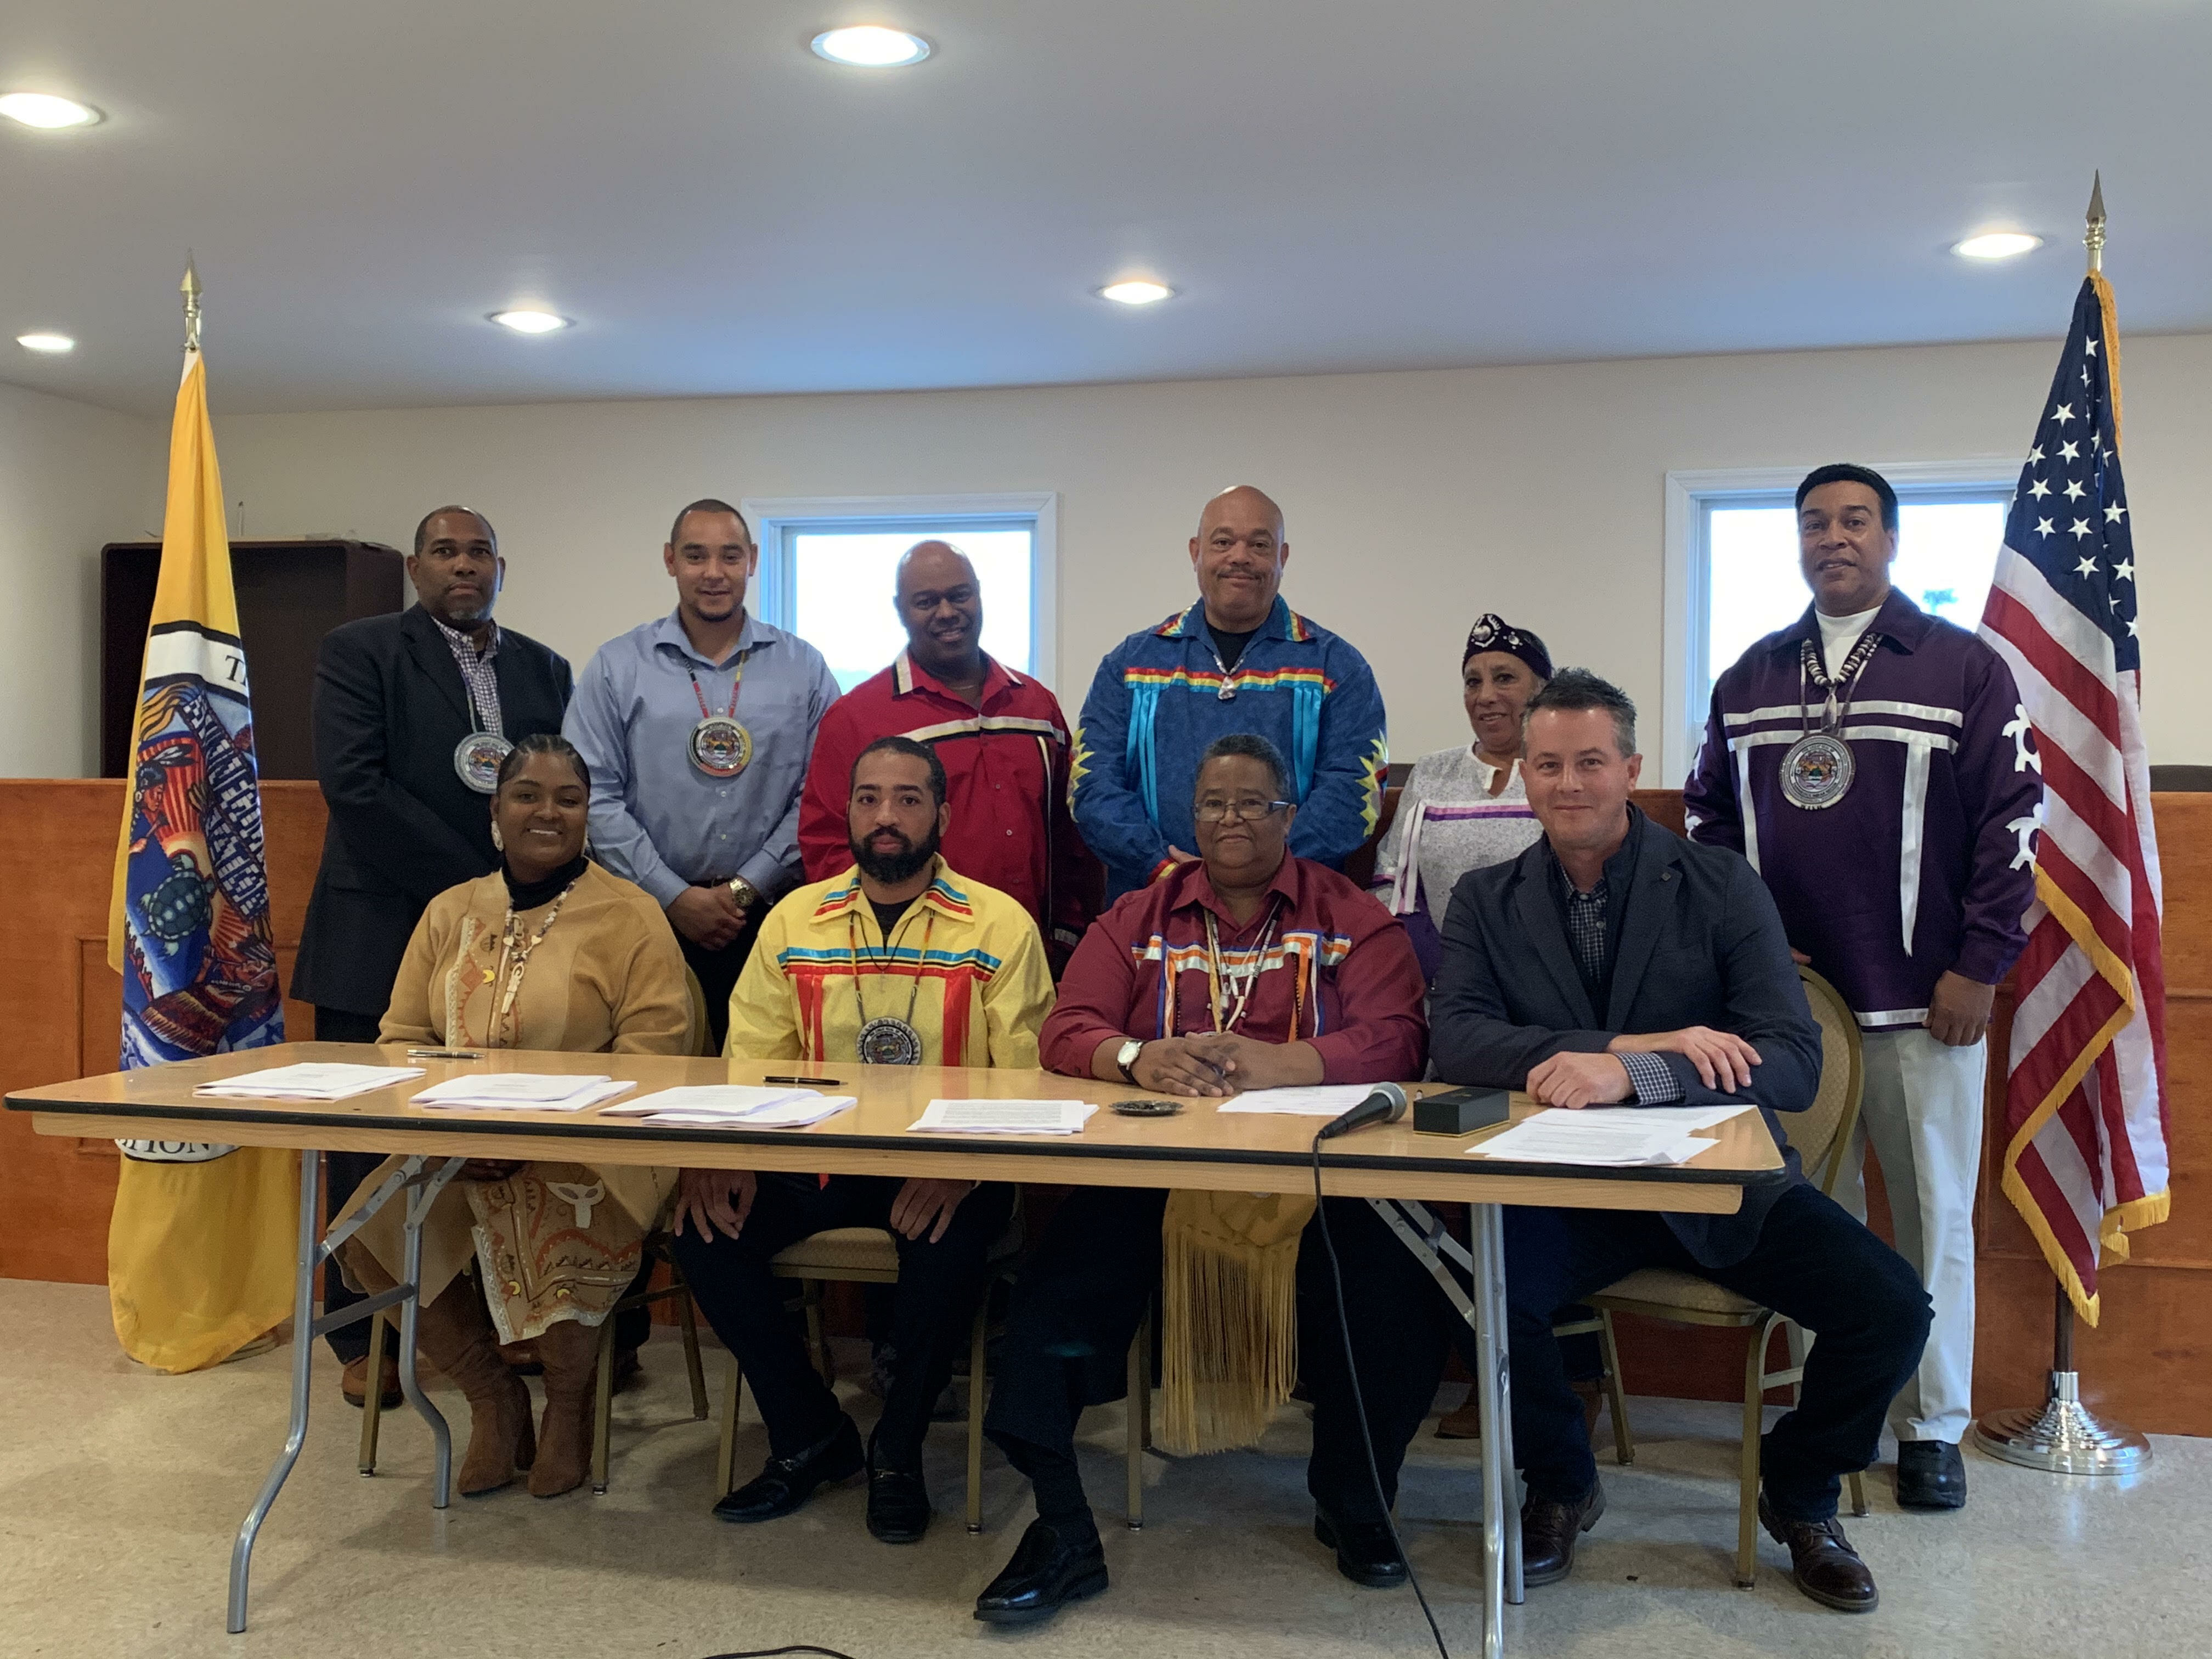 The Shinnecock Nation Council of Trustees signing ceremony initiating the cannabis dispensary project.